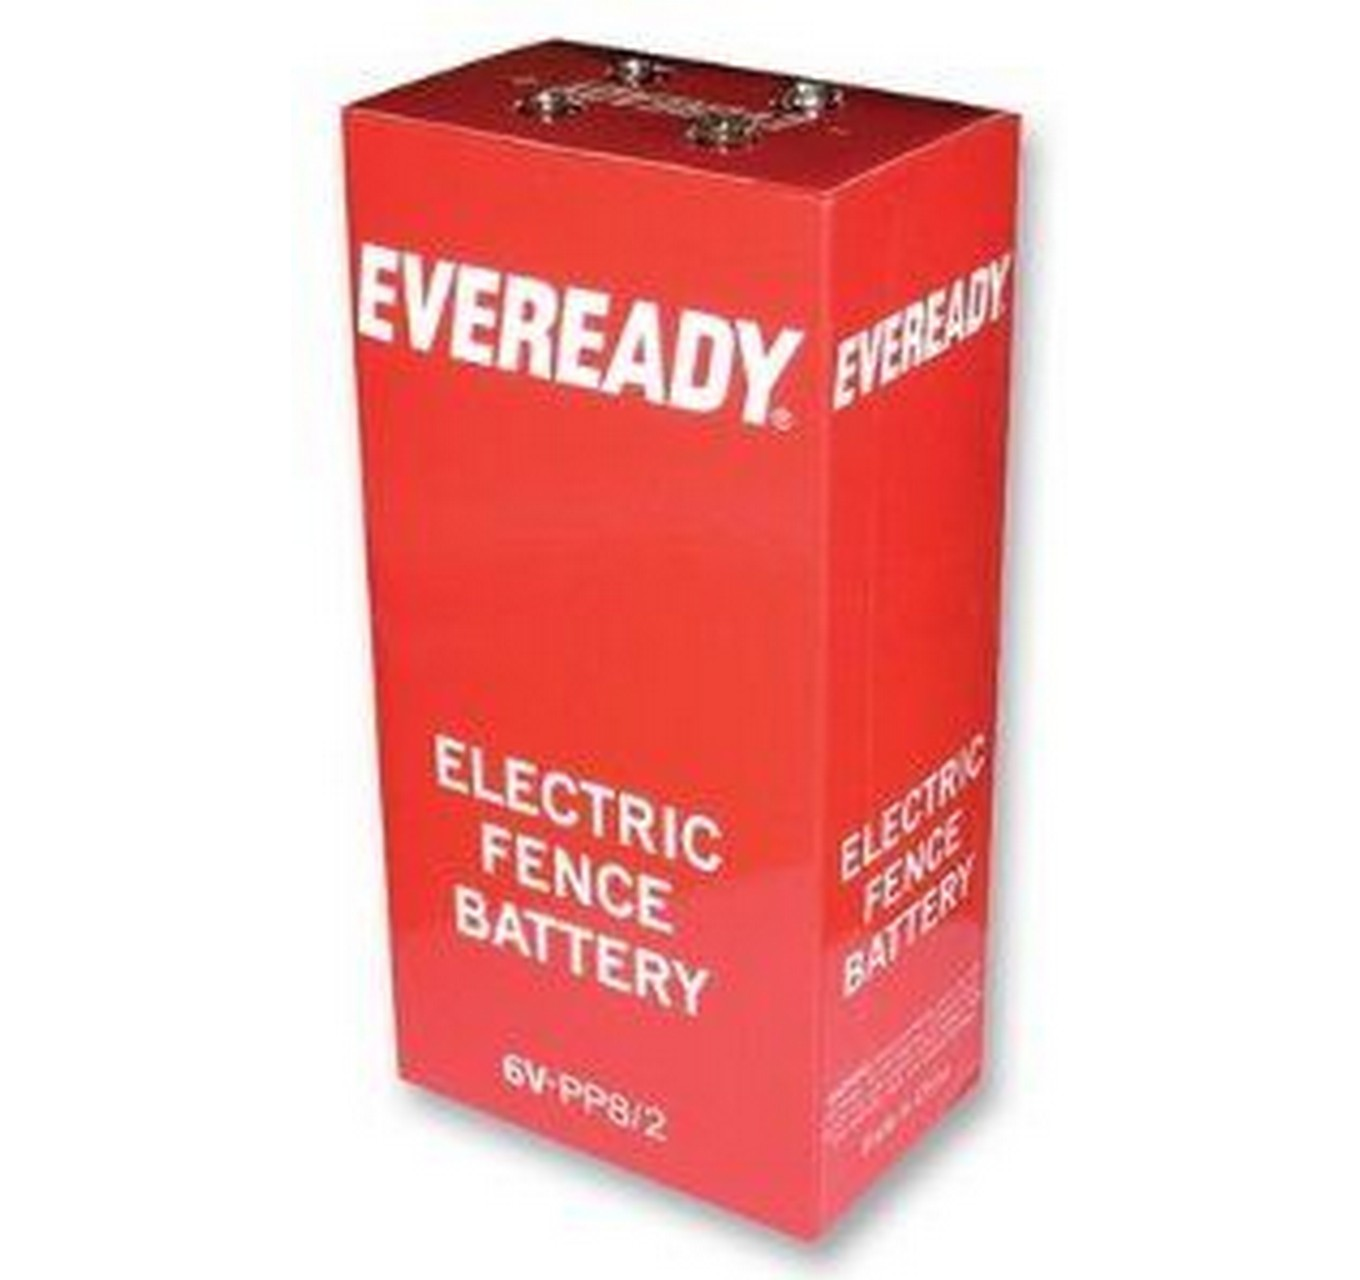 6v Electric Fence Battery PP8